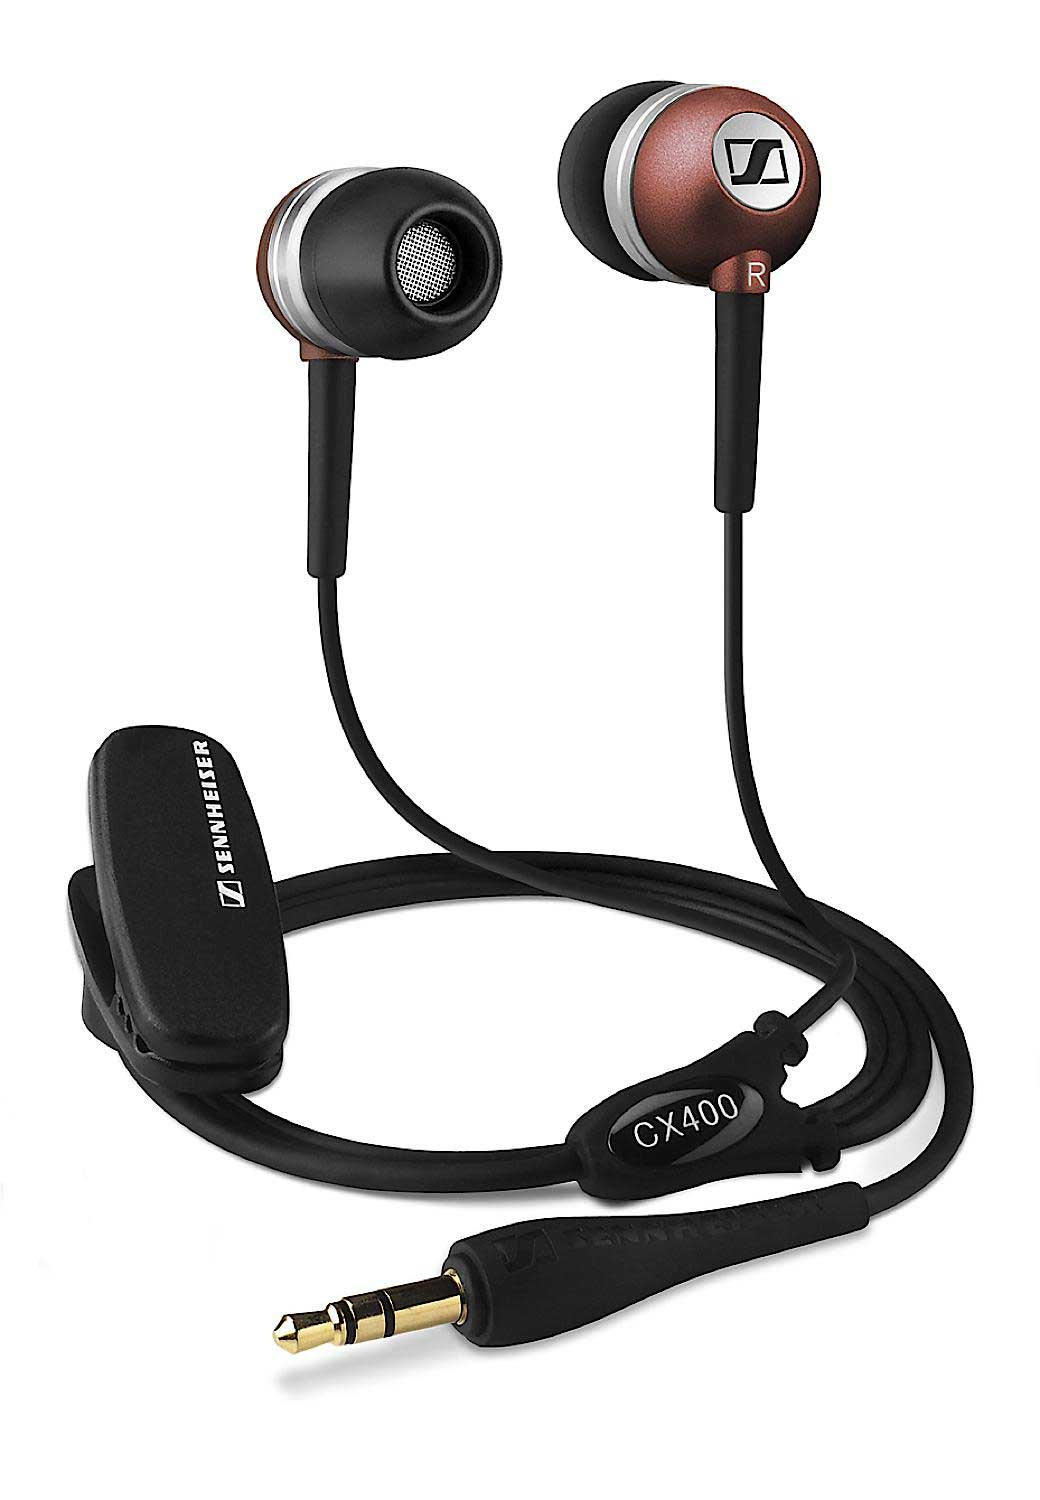 Sennheiser CX 400 sound-isolating earphones